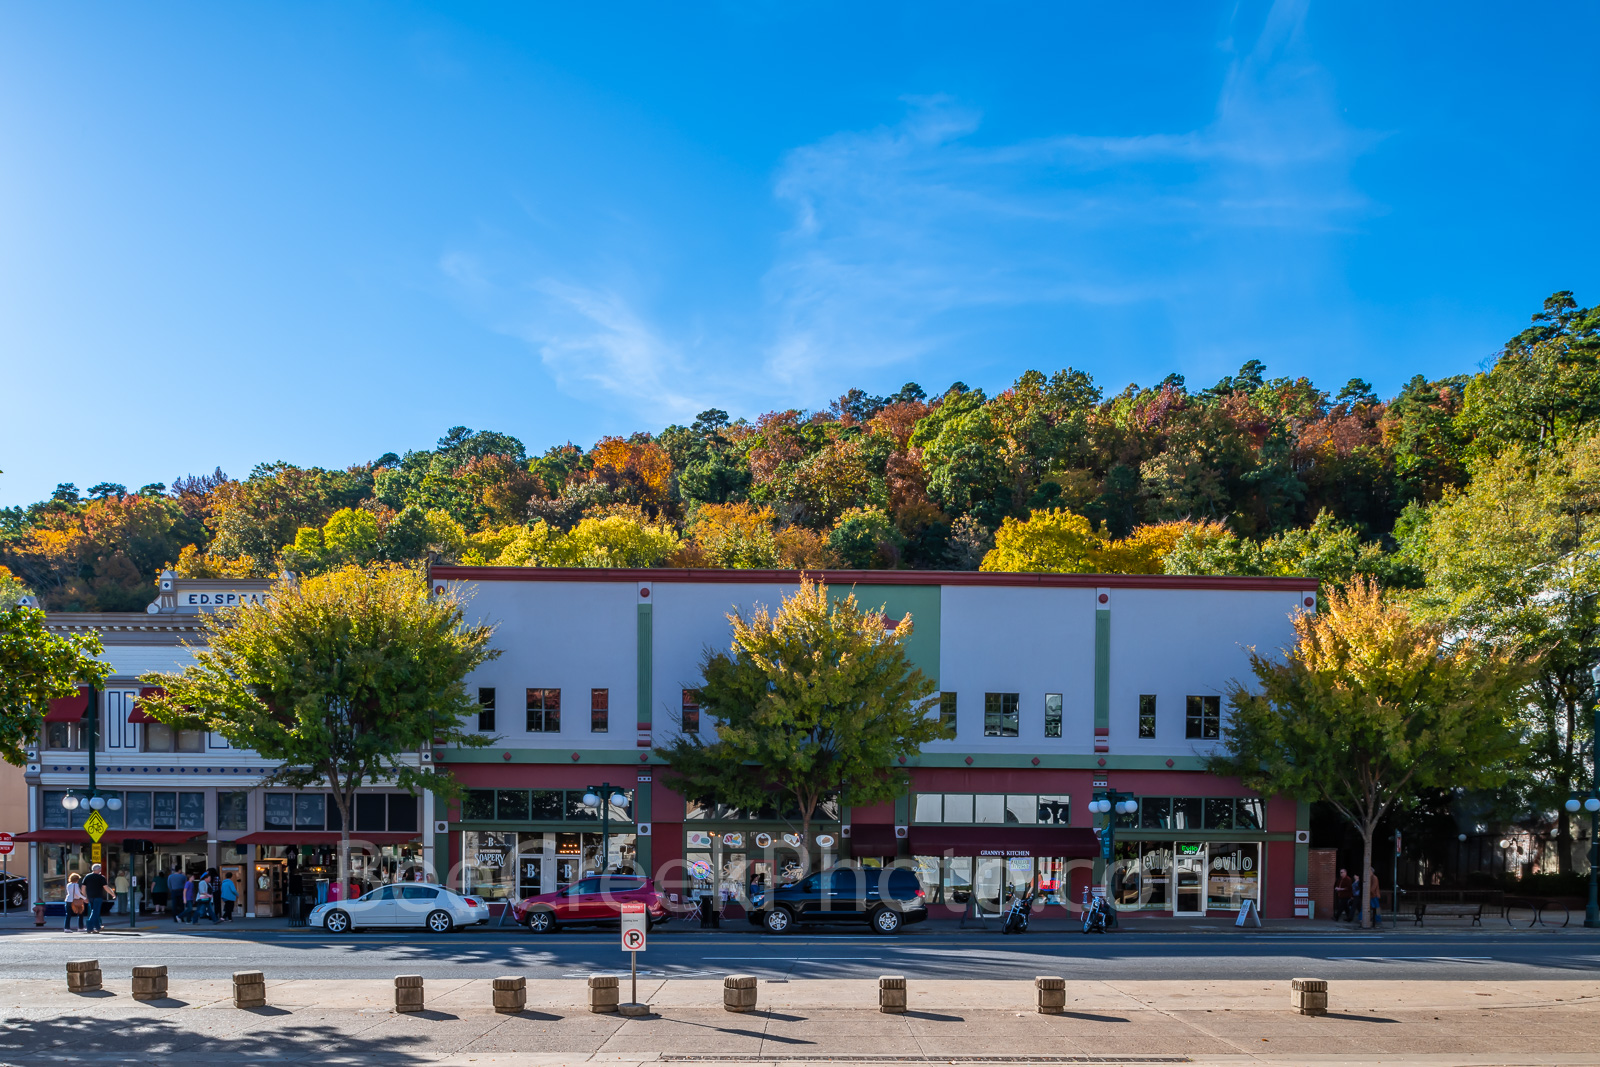 Hot Springs, Central Ave, downtown, fall, colors, bathhouse, tourist attraction, travel,, photo